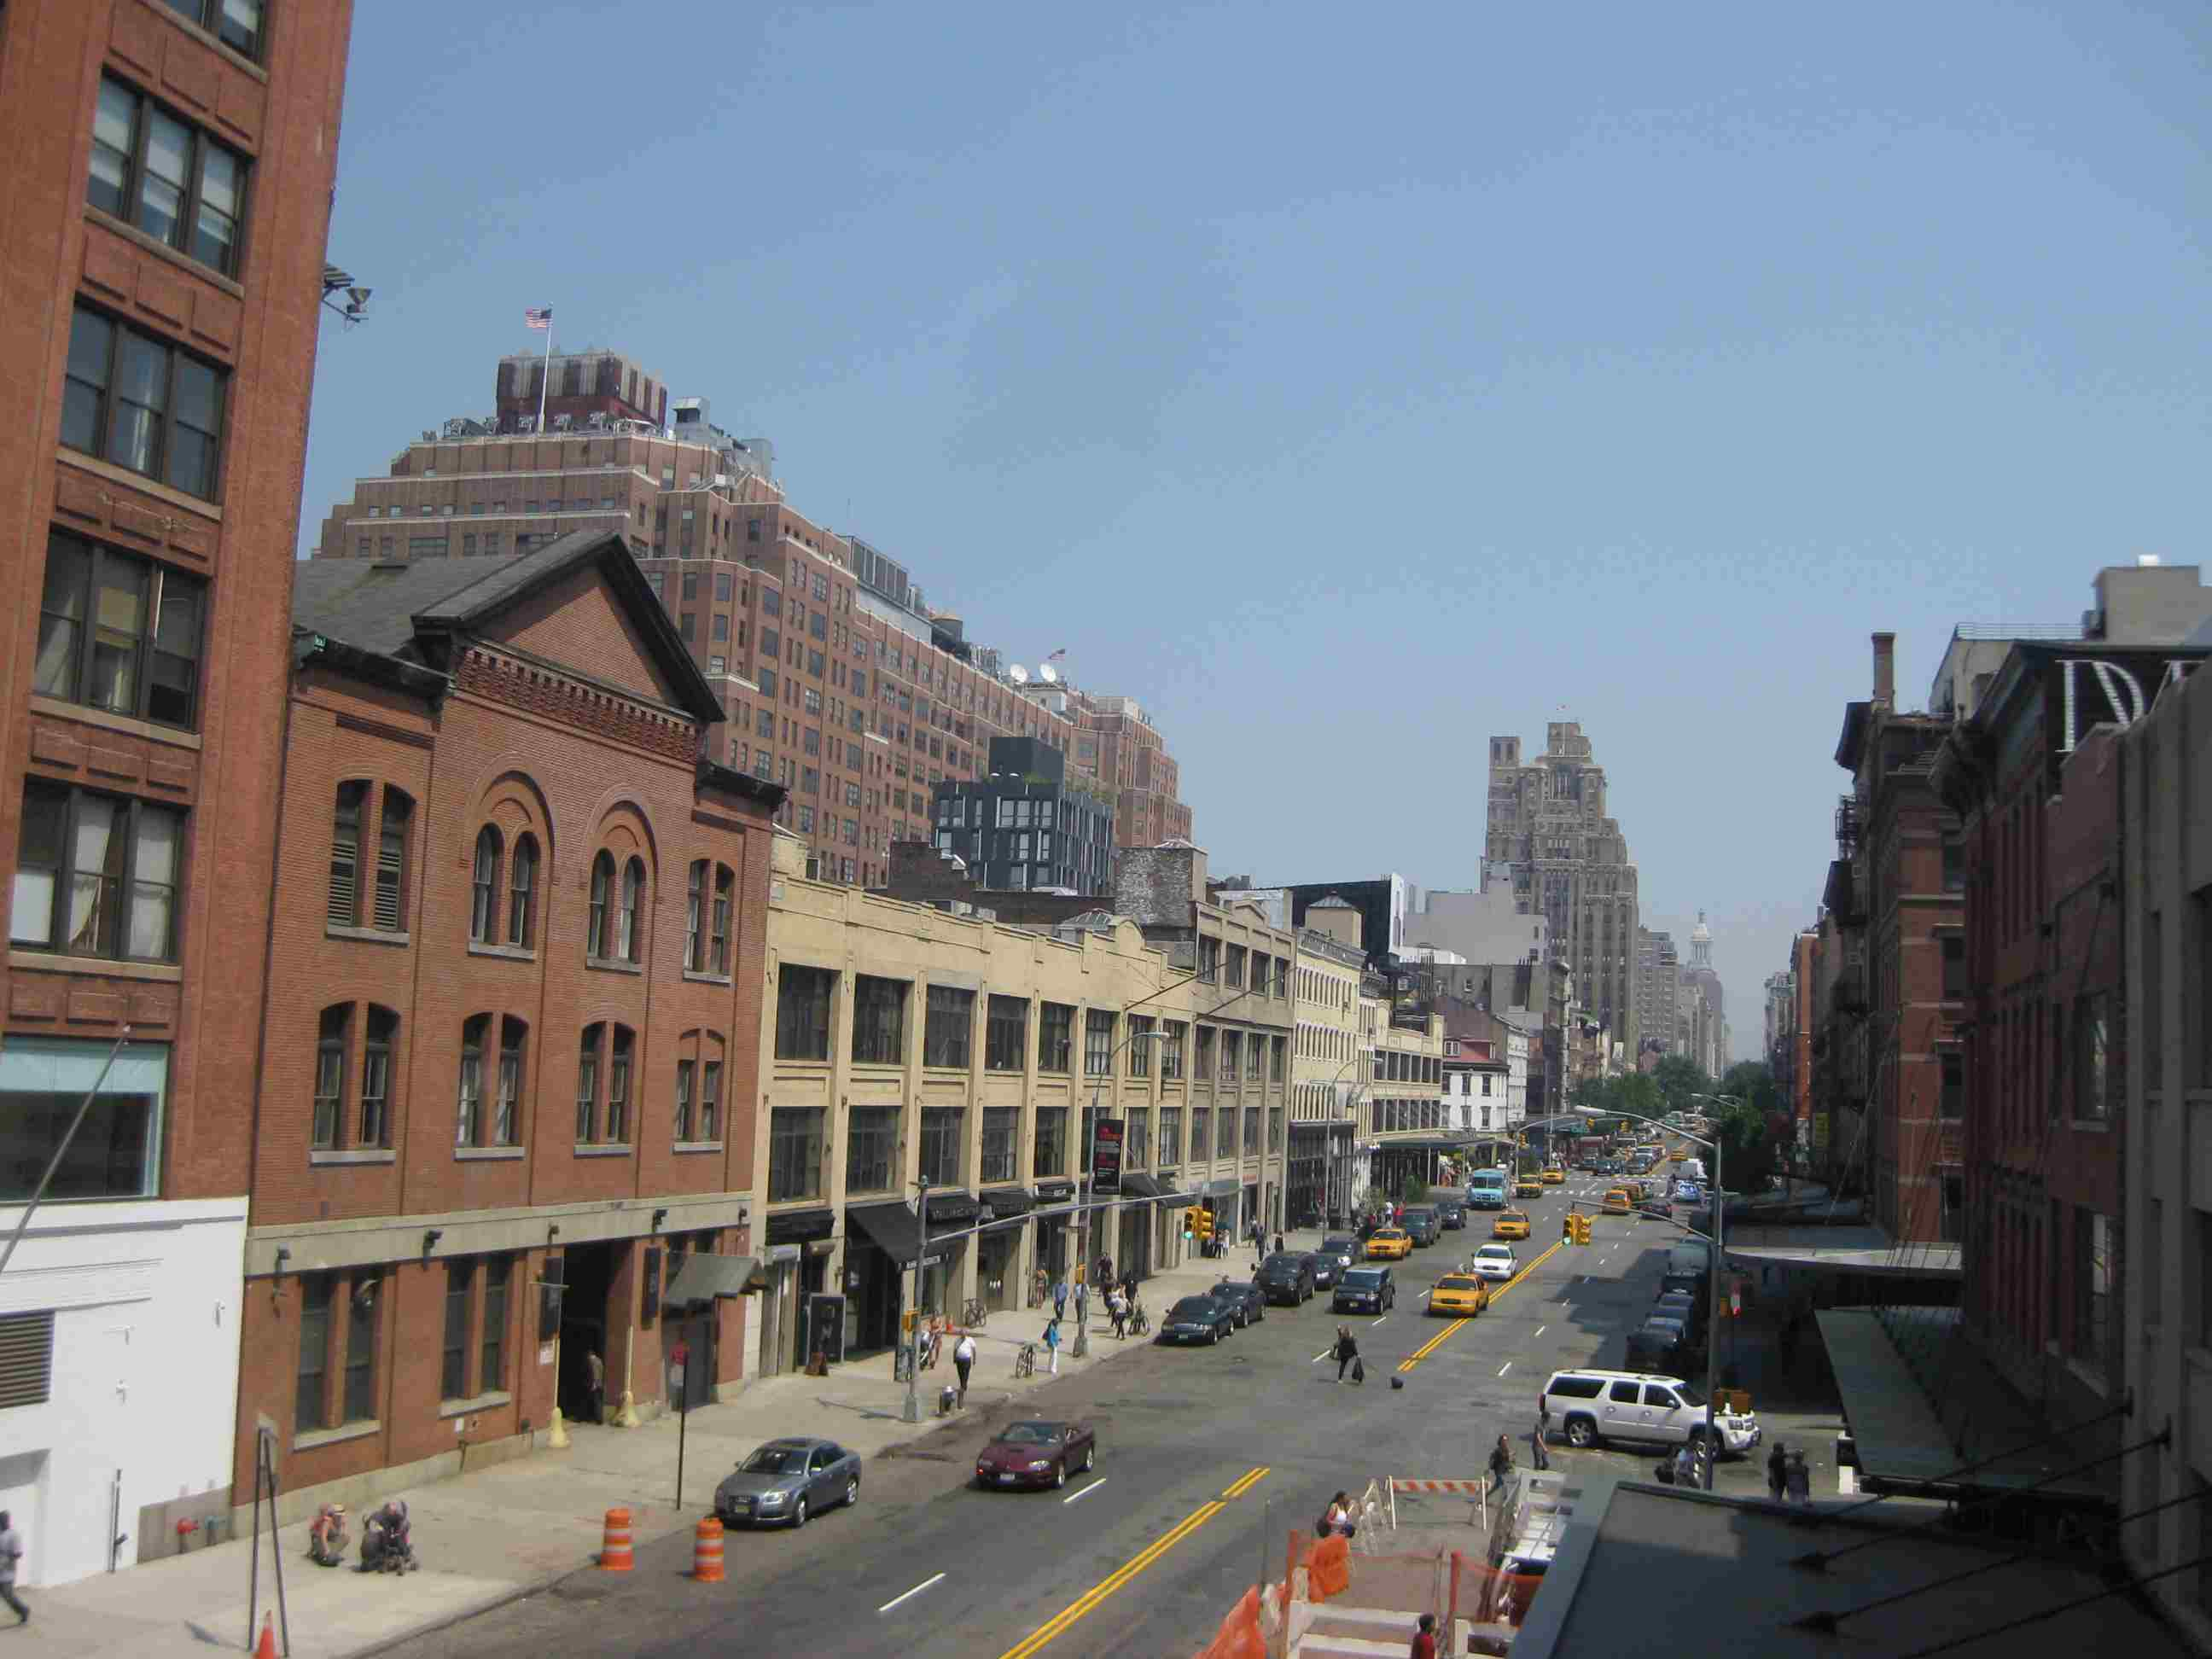 Chelsea New York City Gay Travel Guide and Photo Gallery